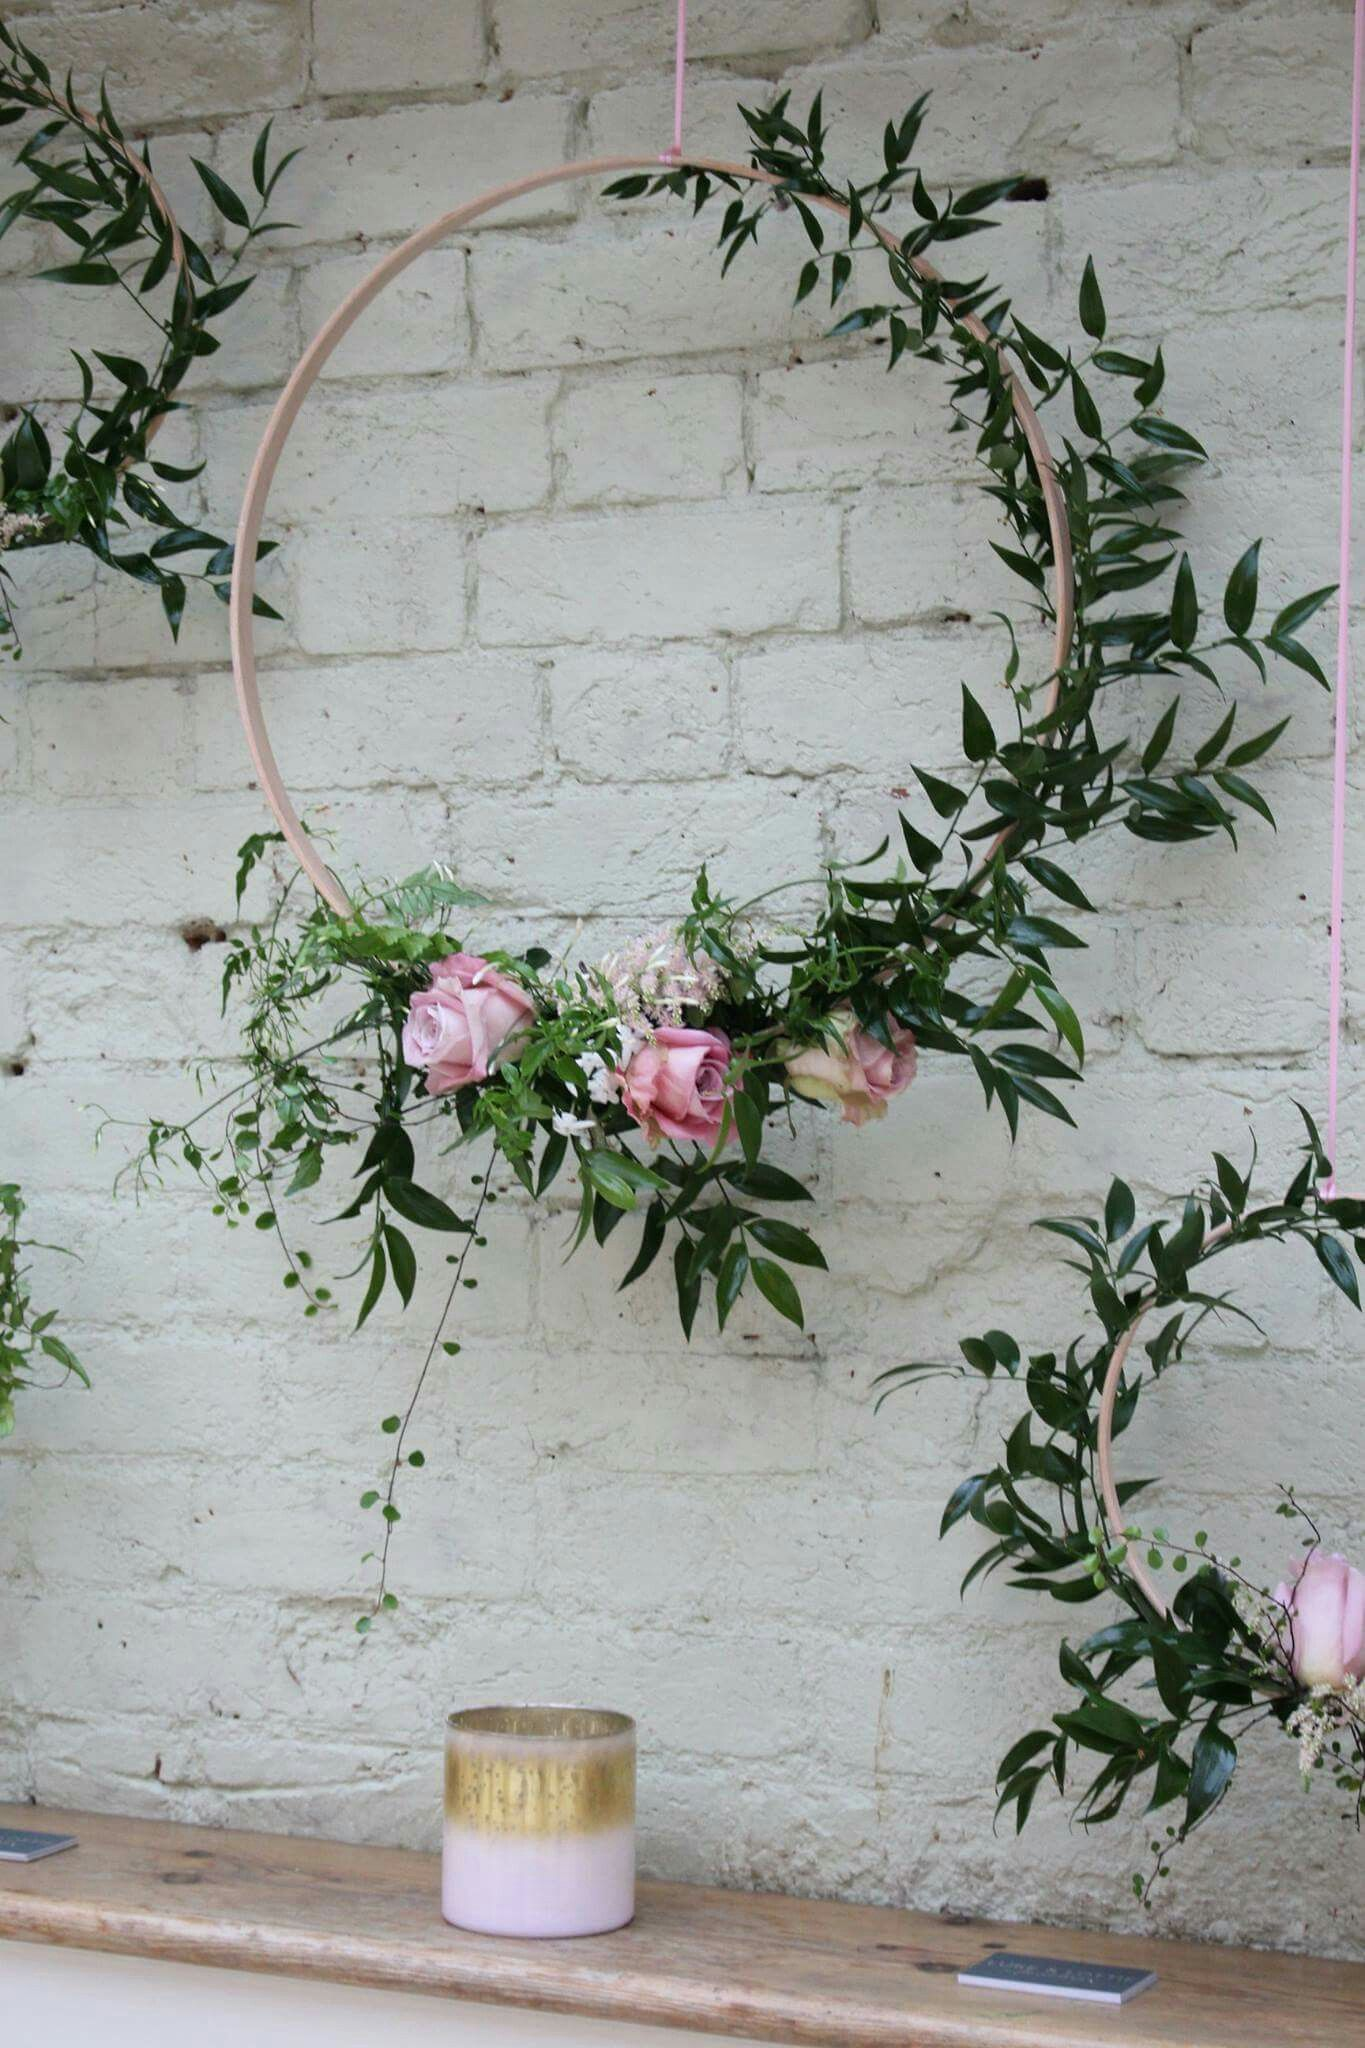 Pin By Carol T On Home Exterior Decor Style Pinterest Wedding